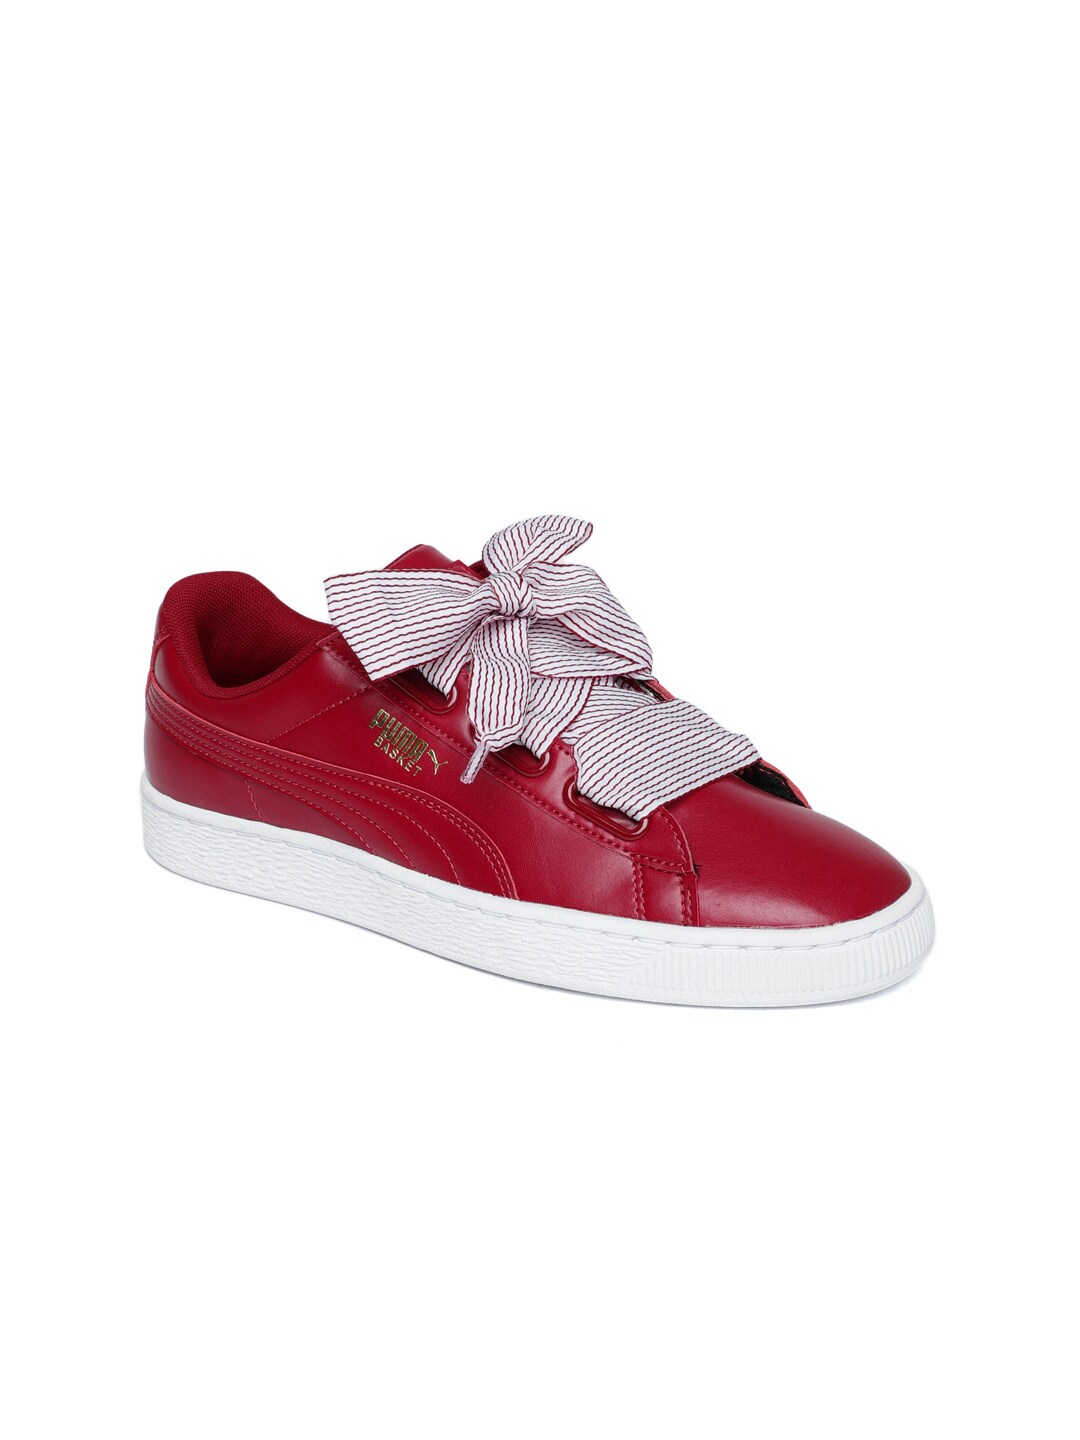 4f8e3520c82 Puma Basket Heart - Buy Puma Basket Heart online in India